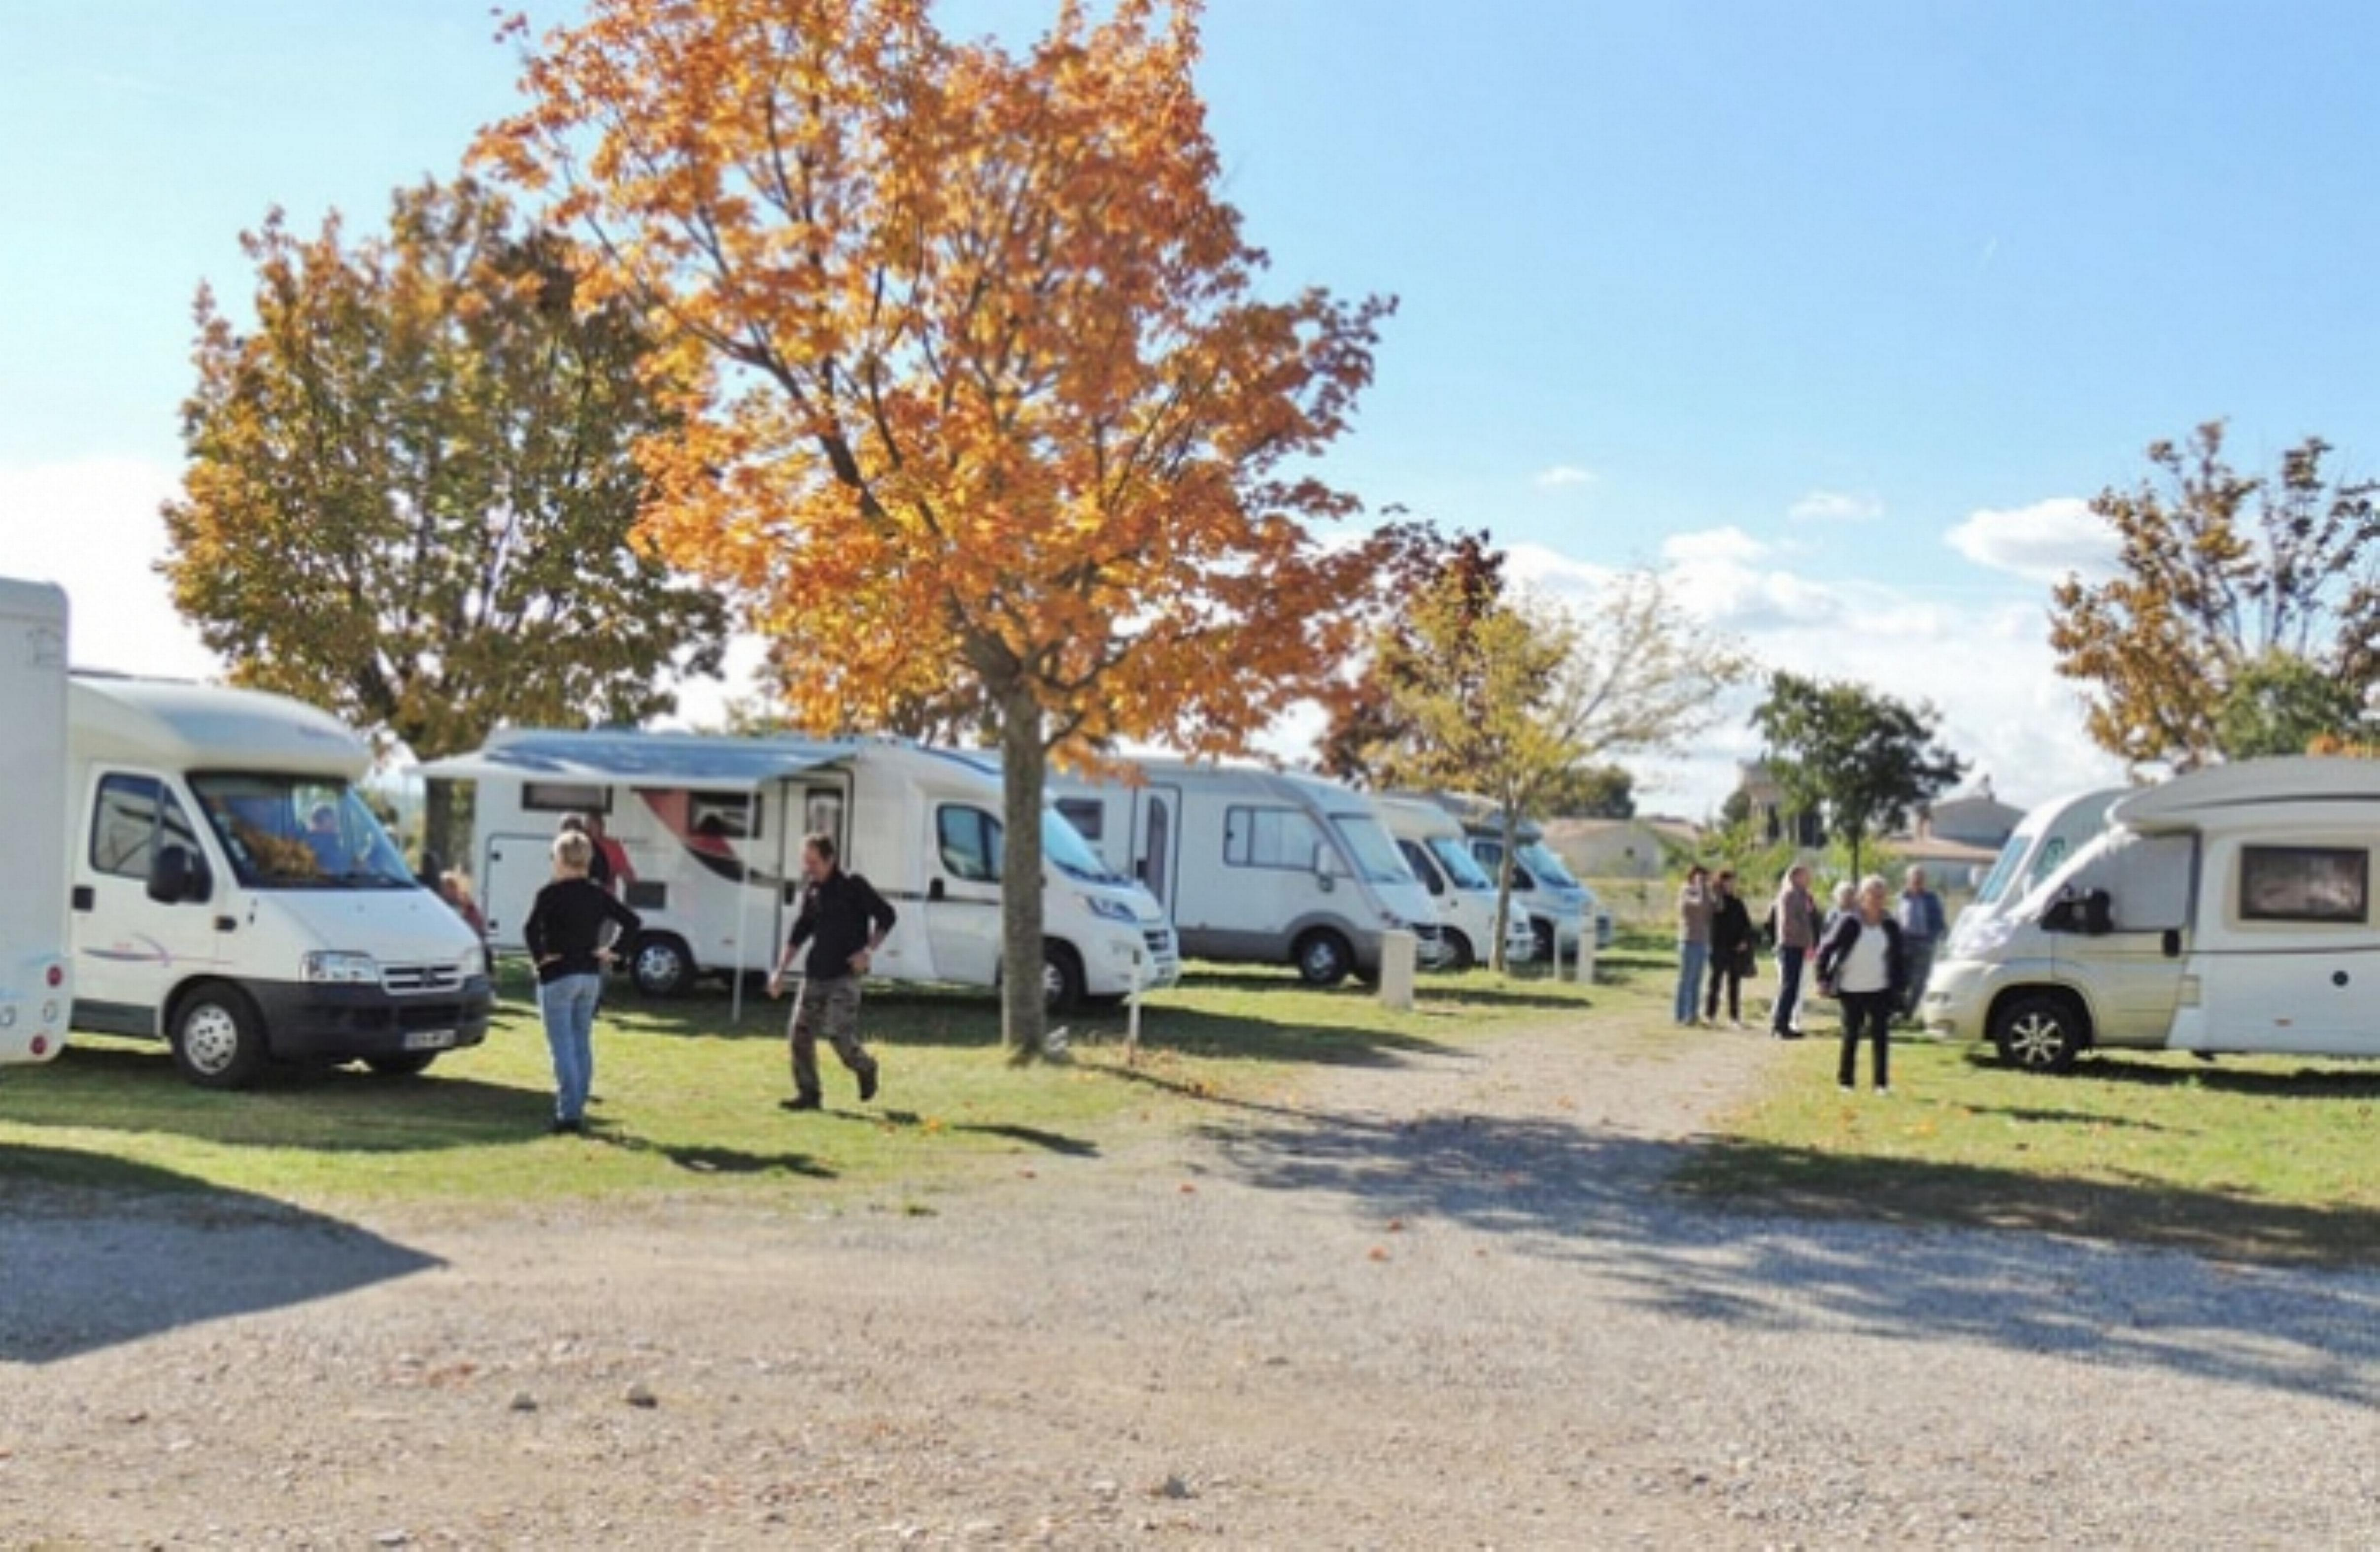 Camping Car A Valensolle